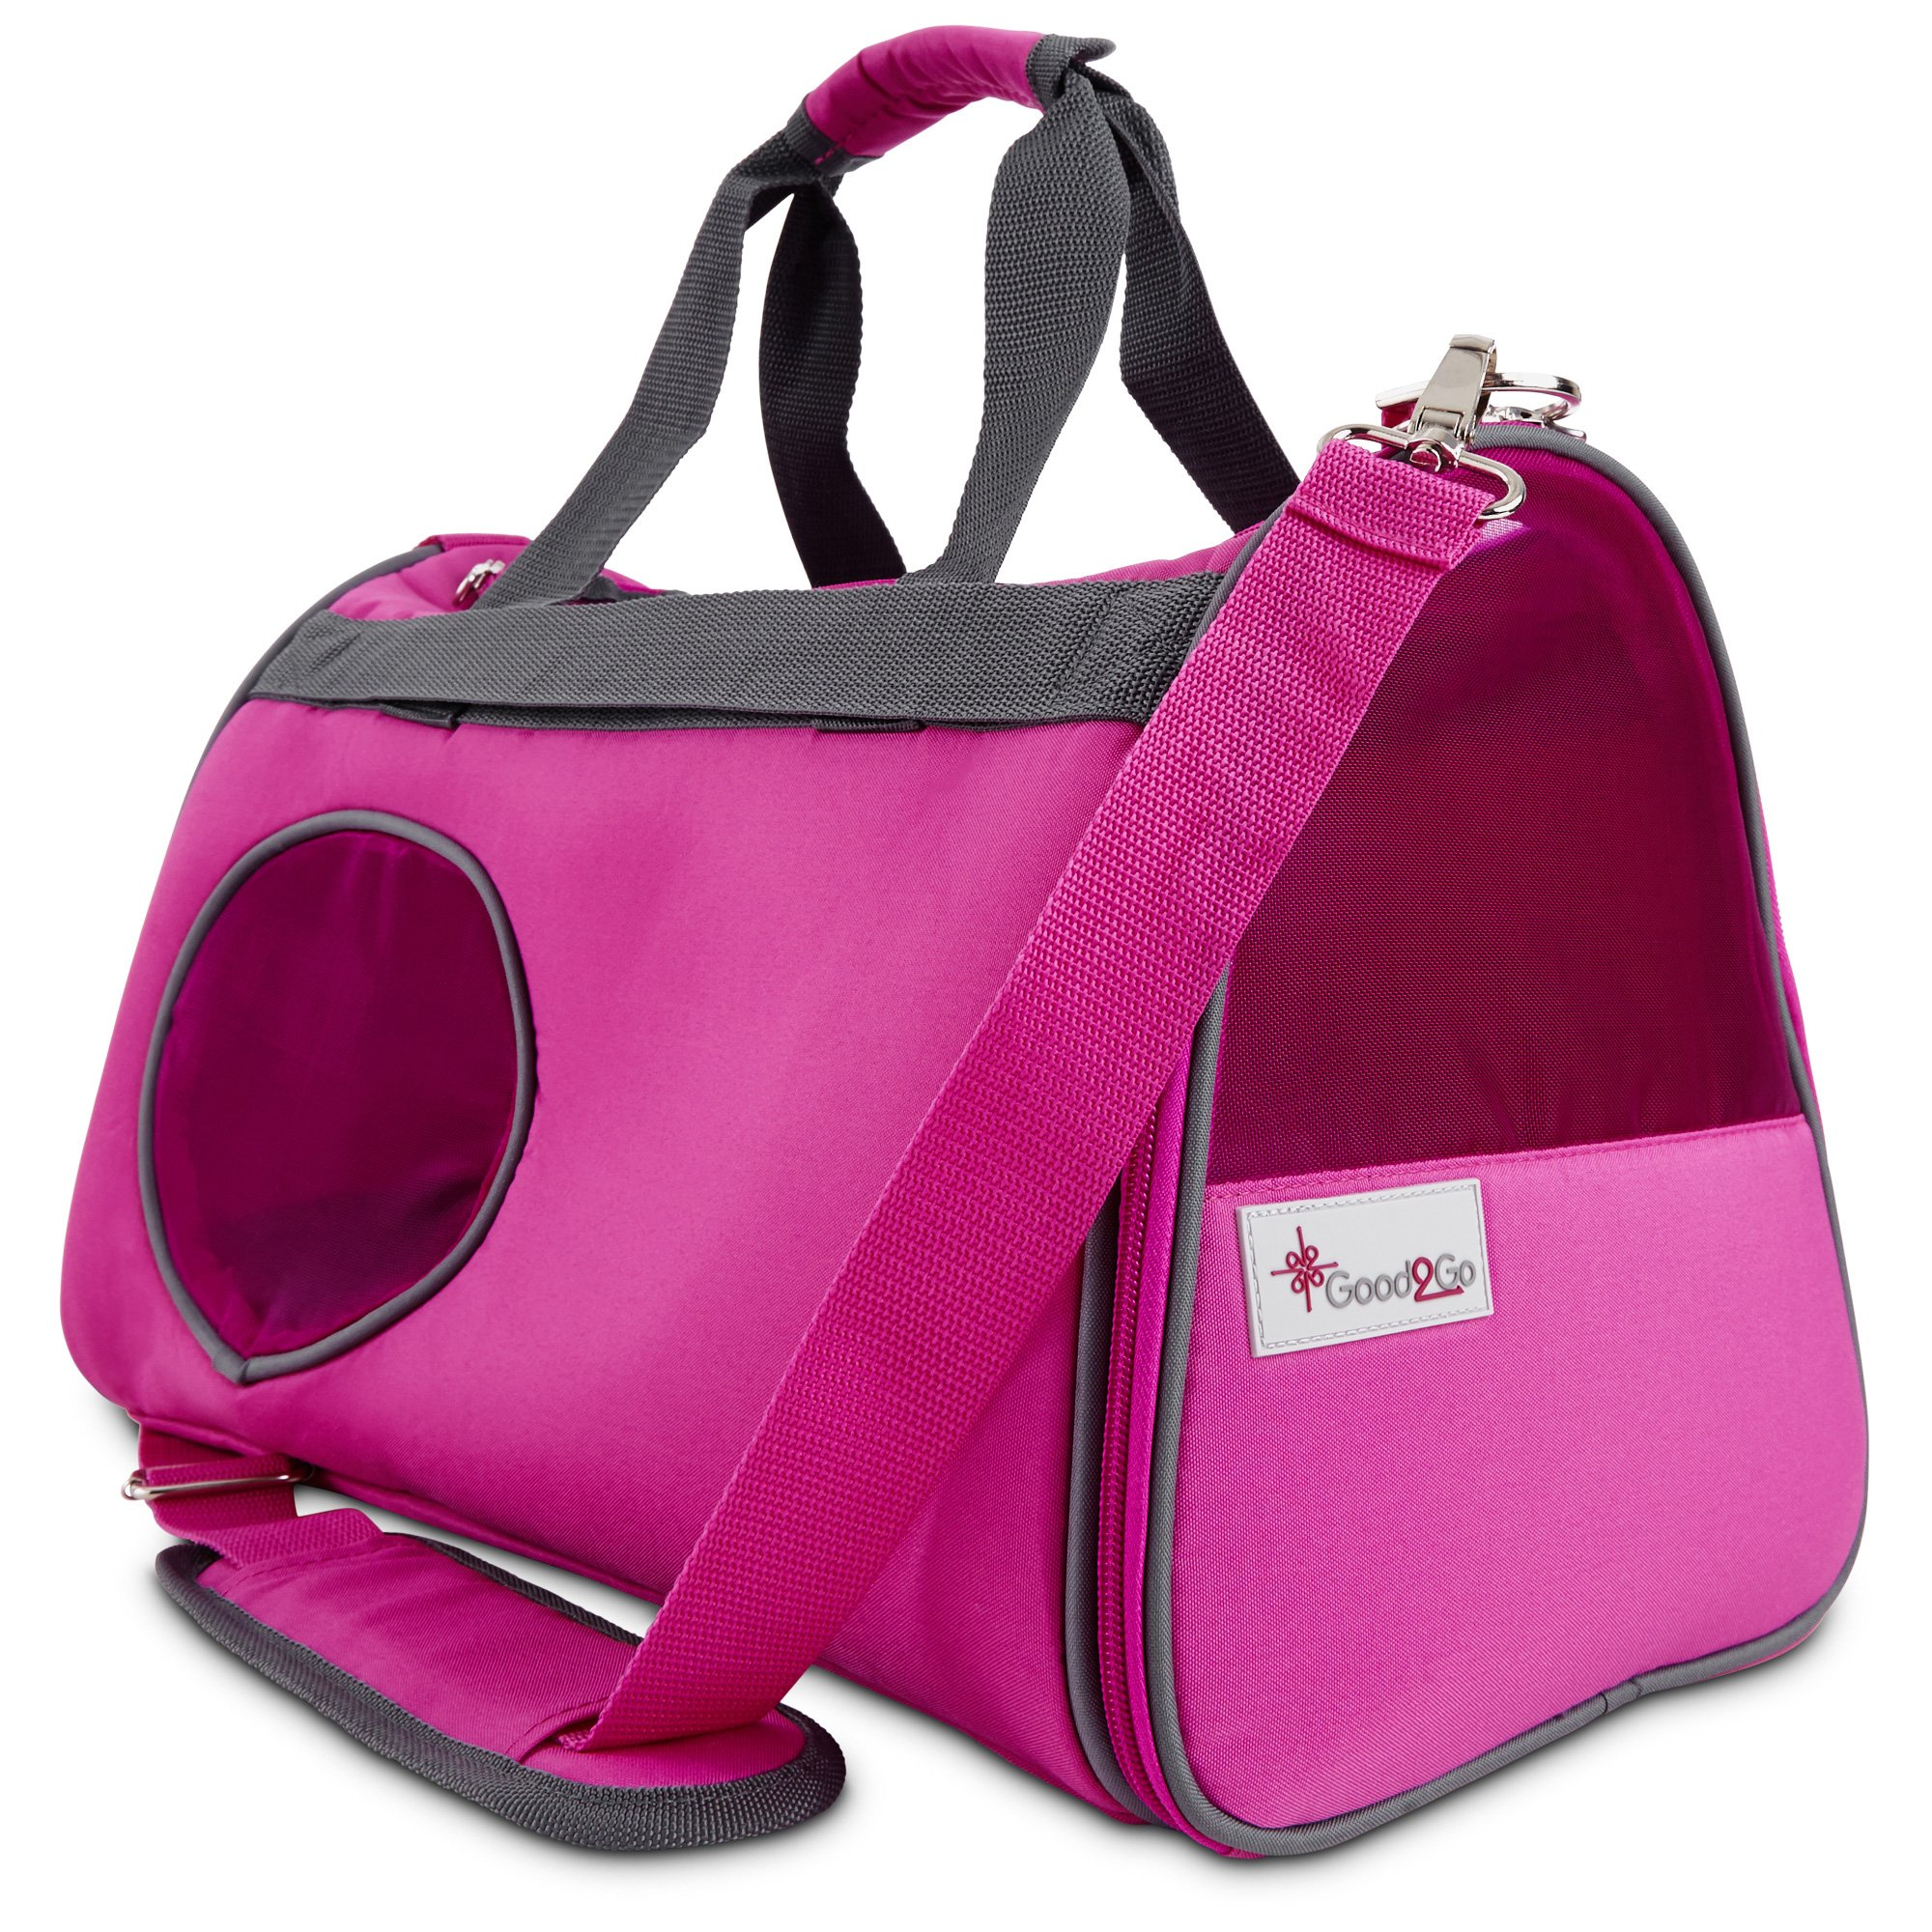 Dog Carriers & Strollers: Pet Carriers & Dog Strollers for Dogs ...